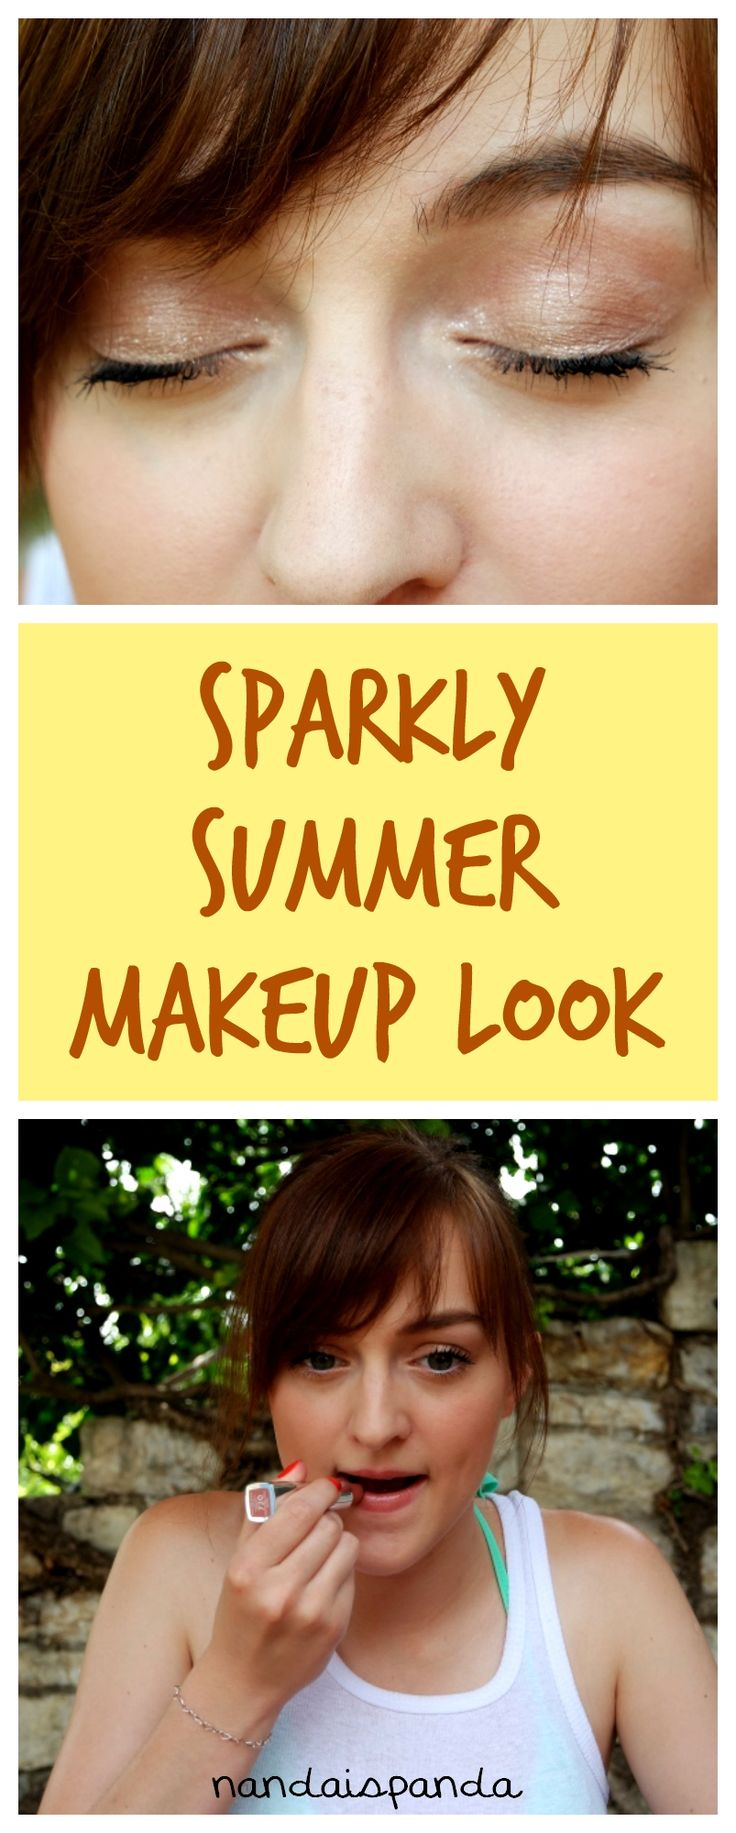 makeup, makeup look, makeup idea, makeup tutorial, how to, step by step, easy, sparkly summer look, affordable, budget, drugstore, natural look